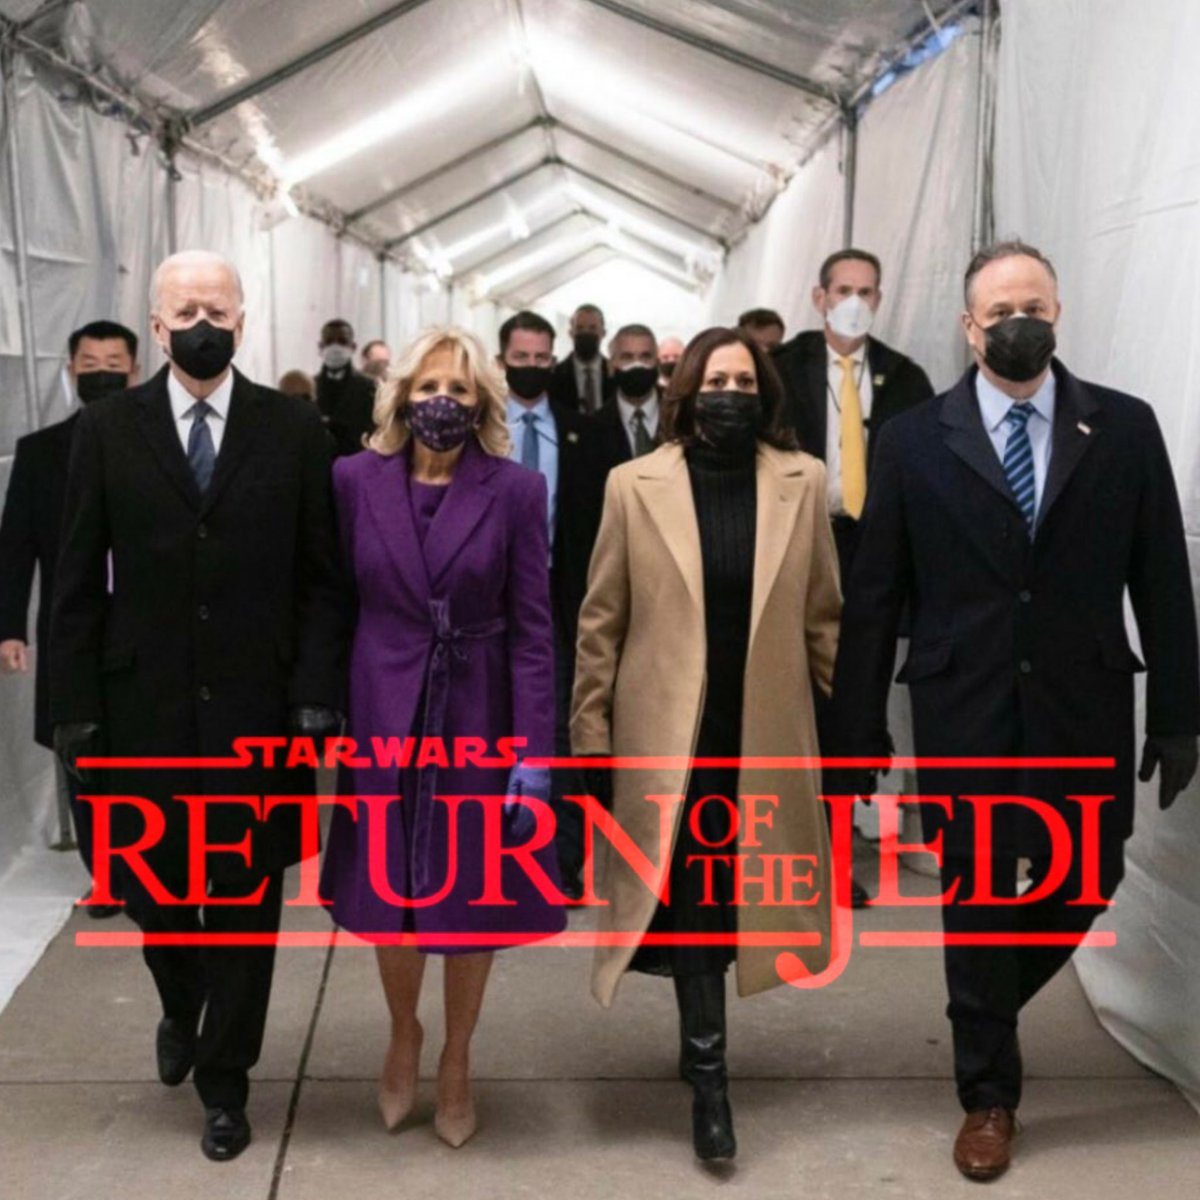 #InaugurationDay #Inauguration2021 #BidenHarrisInauguration #returnofthejedi #jedi